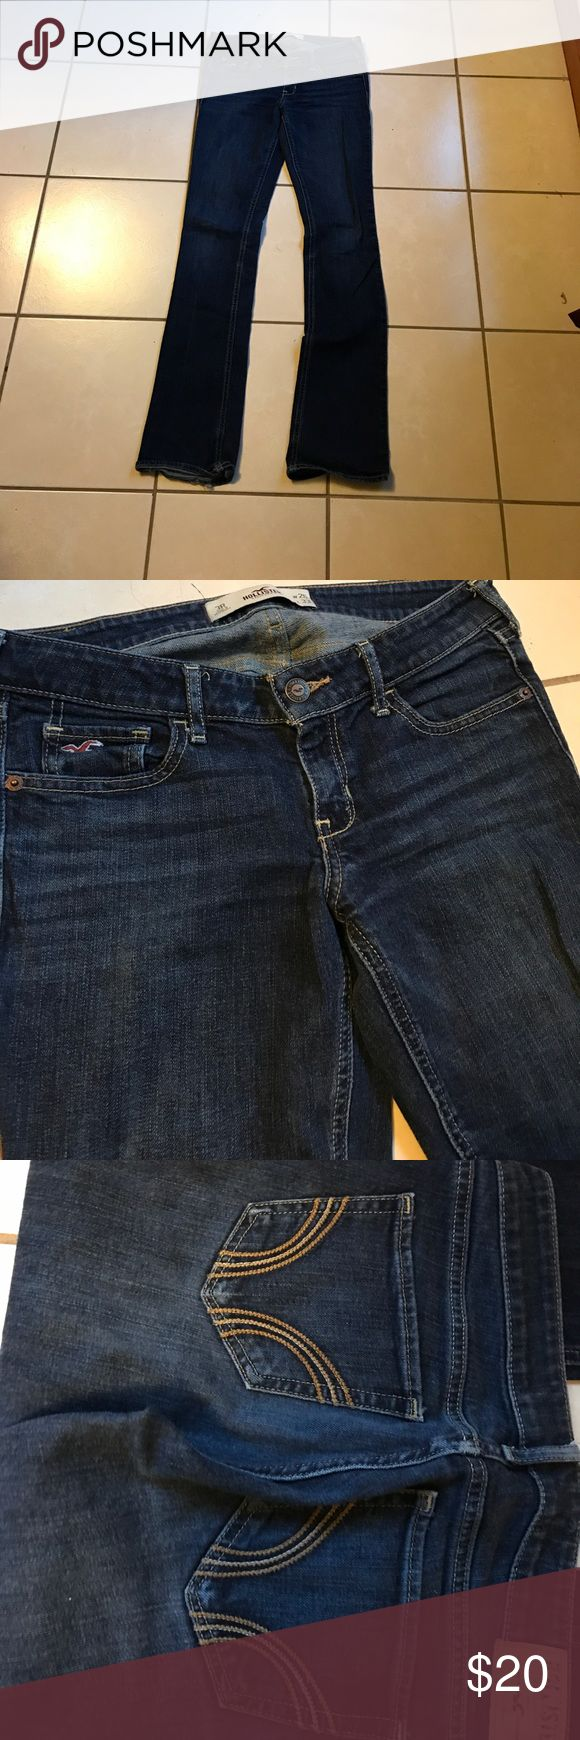 Hollister boot cut jeans These hollister boot cut jeans are in great condition. They are regular length. They are dark blue and have some fading by the pockets. They are tight fitting and very flattering. Hollister Jeans Boot Cut